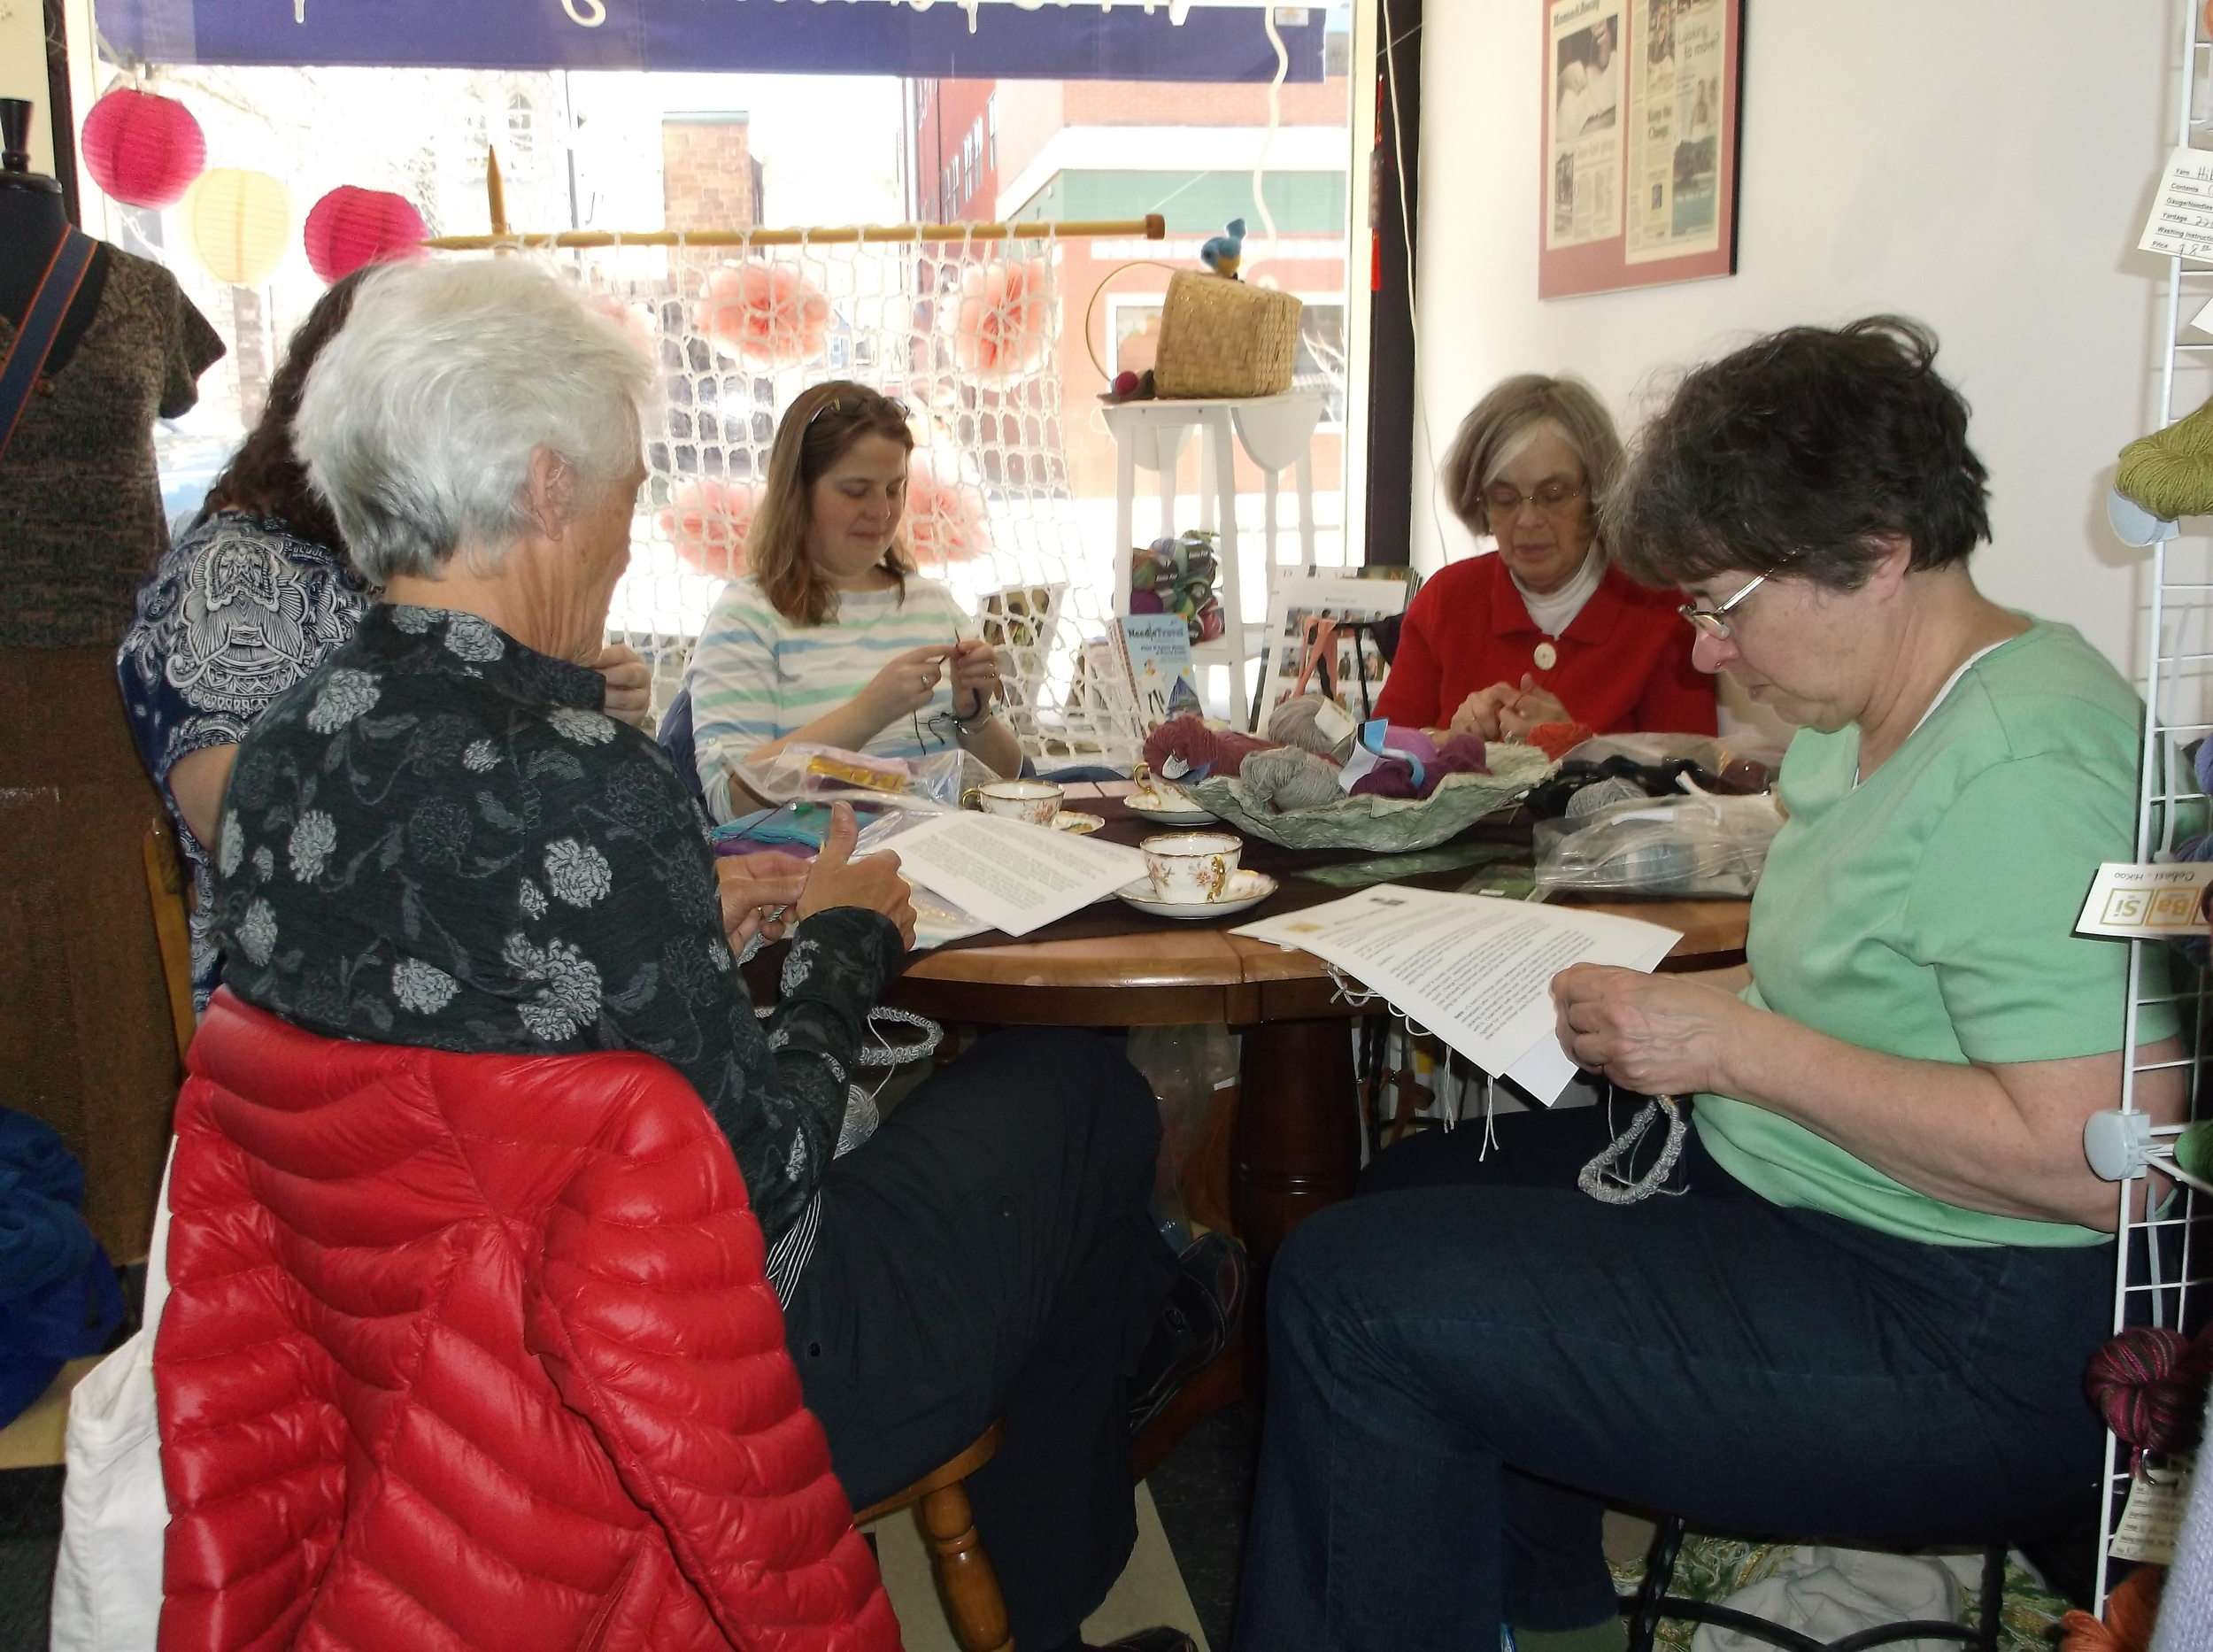 Women enjoy creative and social time at one of yarn's classes